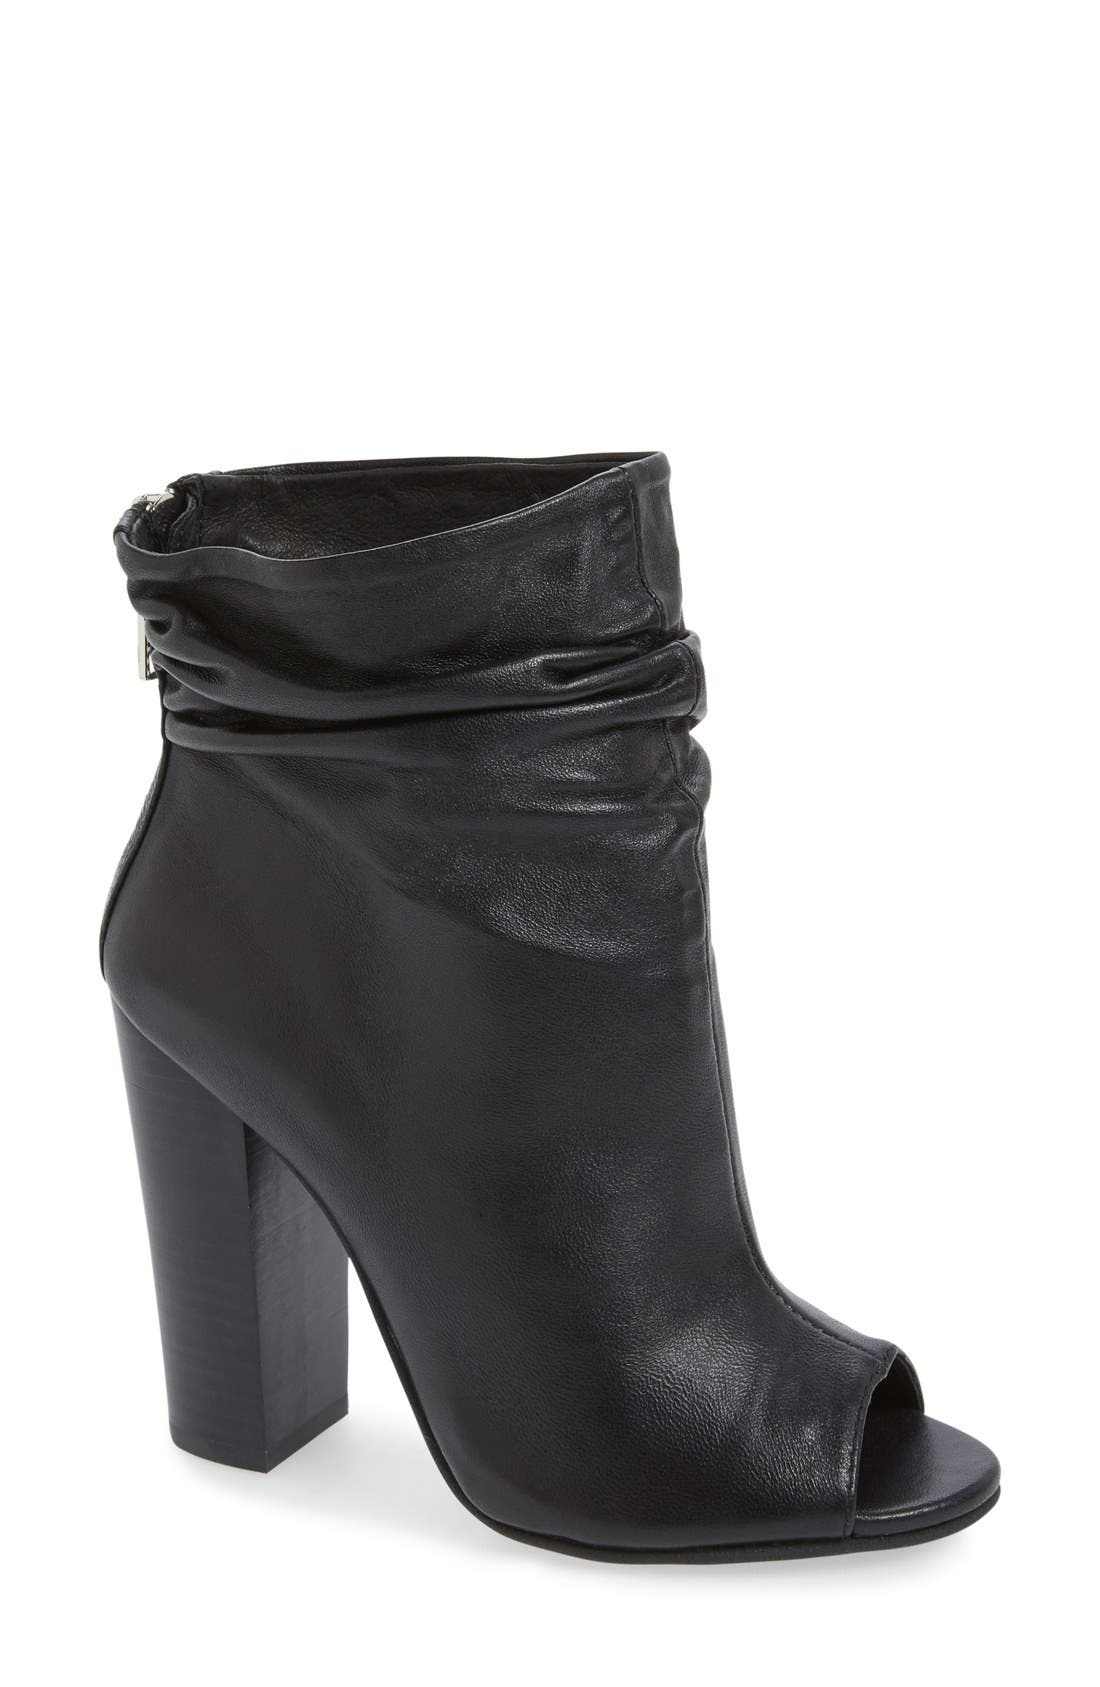 'Liam' Peep Toe Bootie,                             Main thumbnail 1, color,                             001